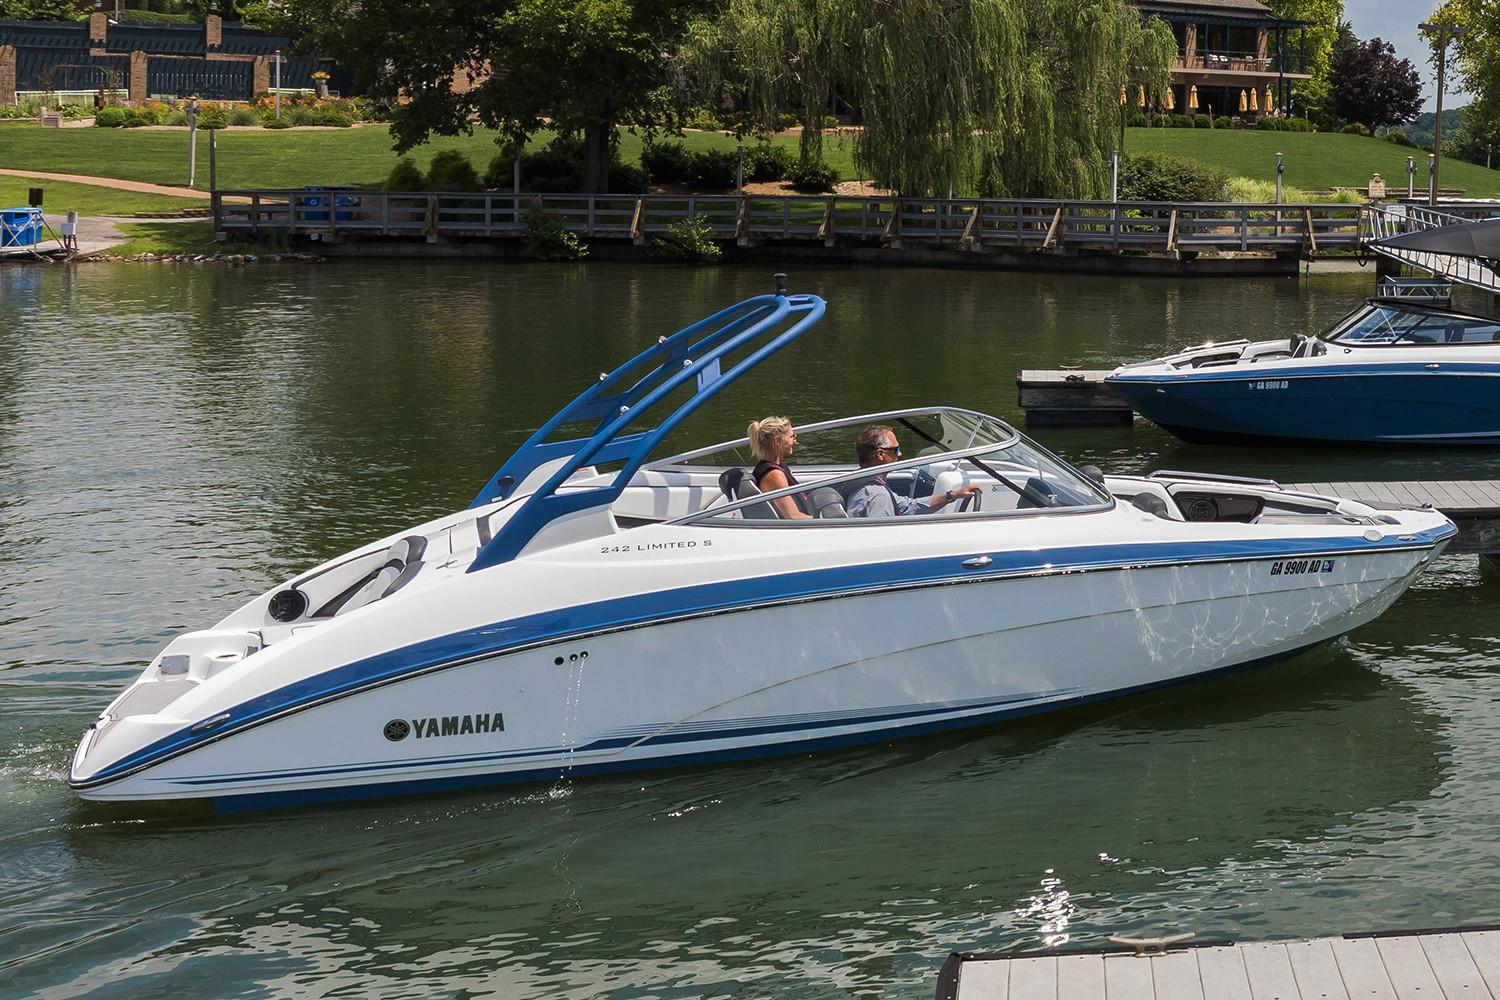 2018 Yamaha 242 Limited S E-Series in Bridgeport, New York